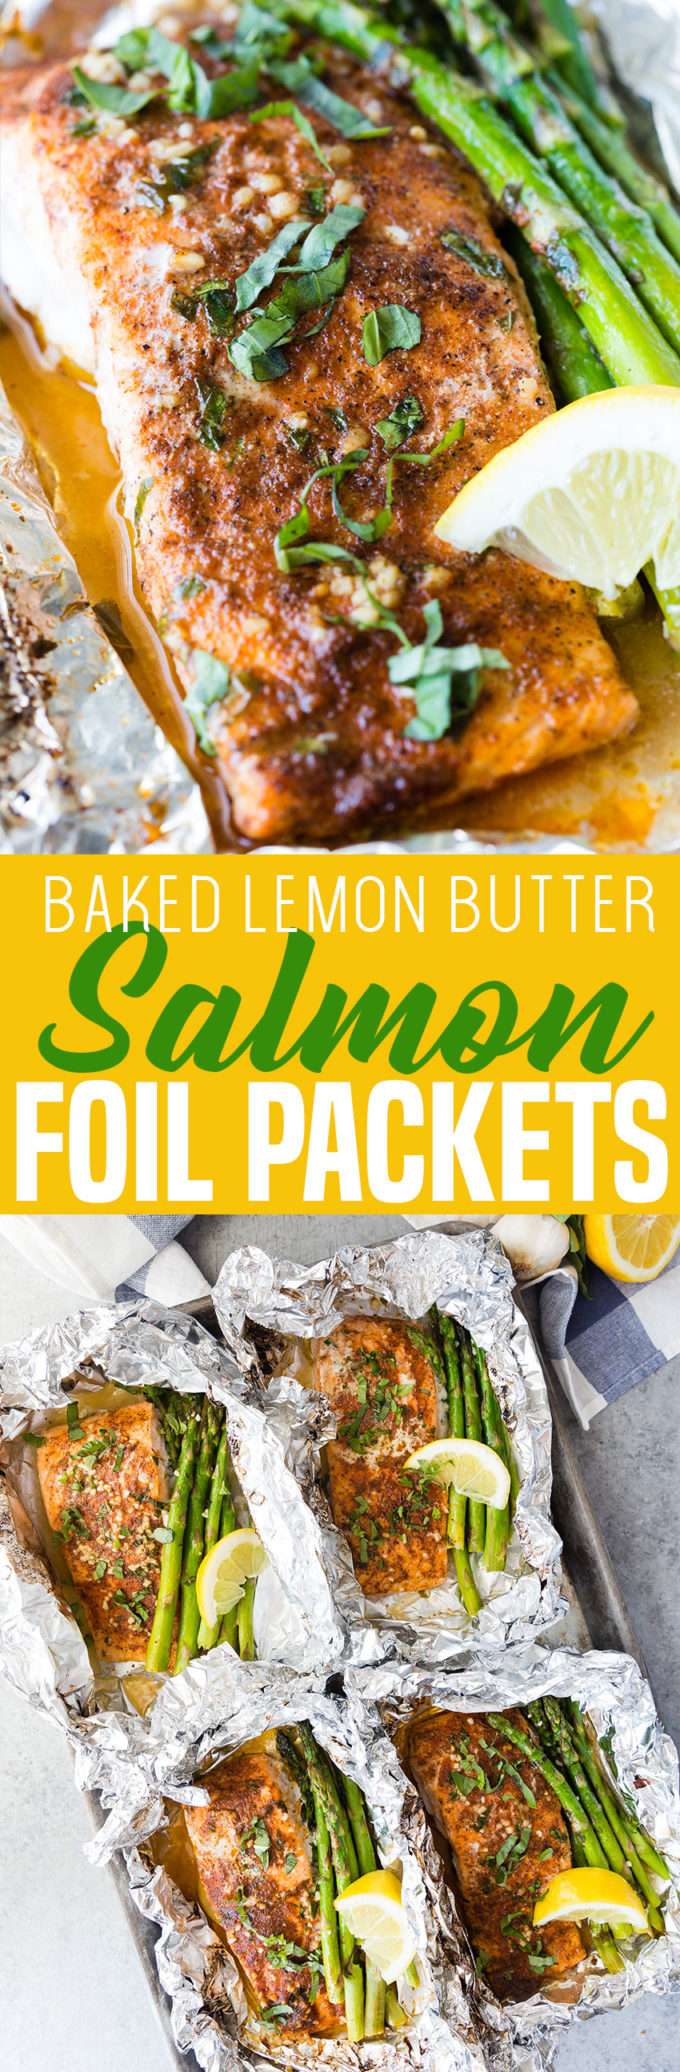 Making a baked lemon butter salmon with asparagus, foil packet